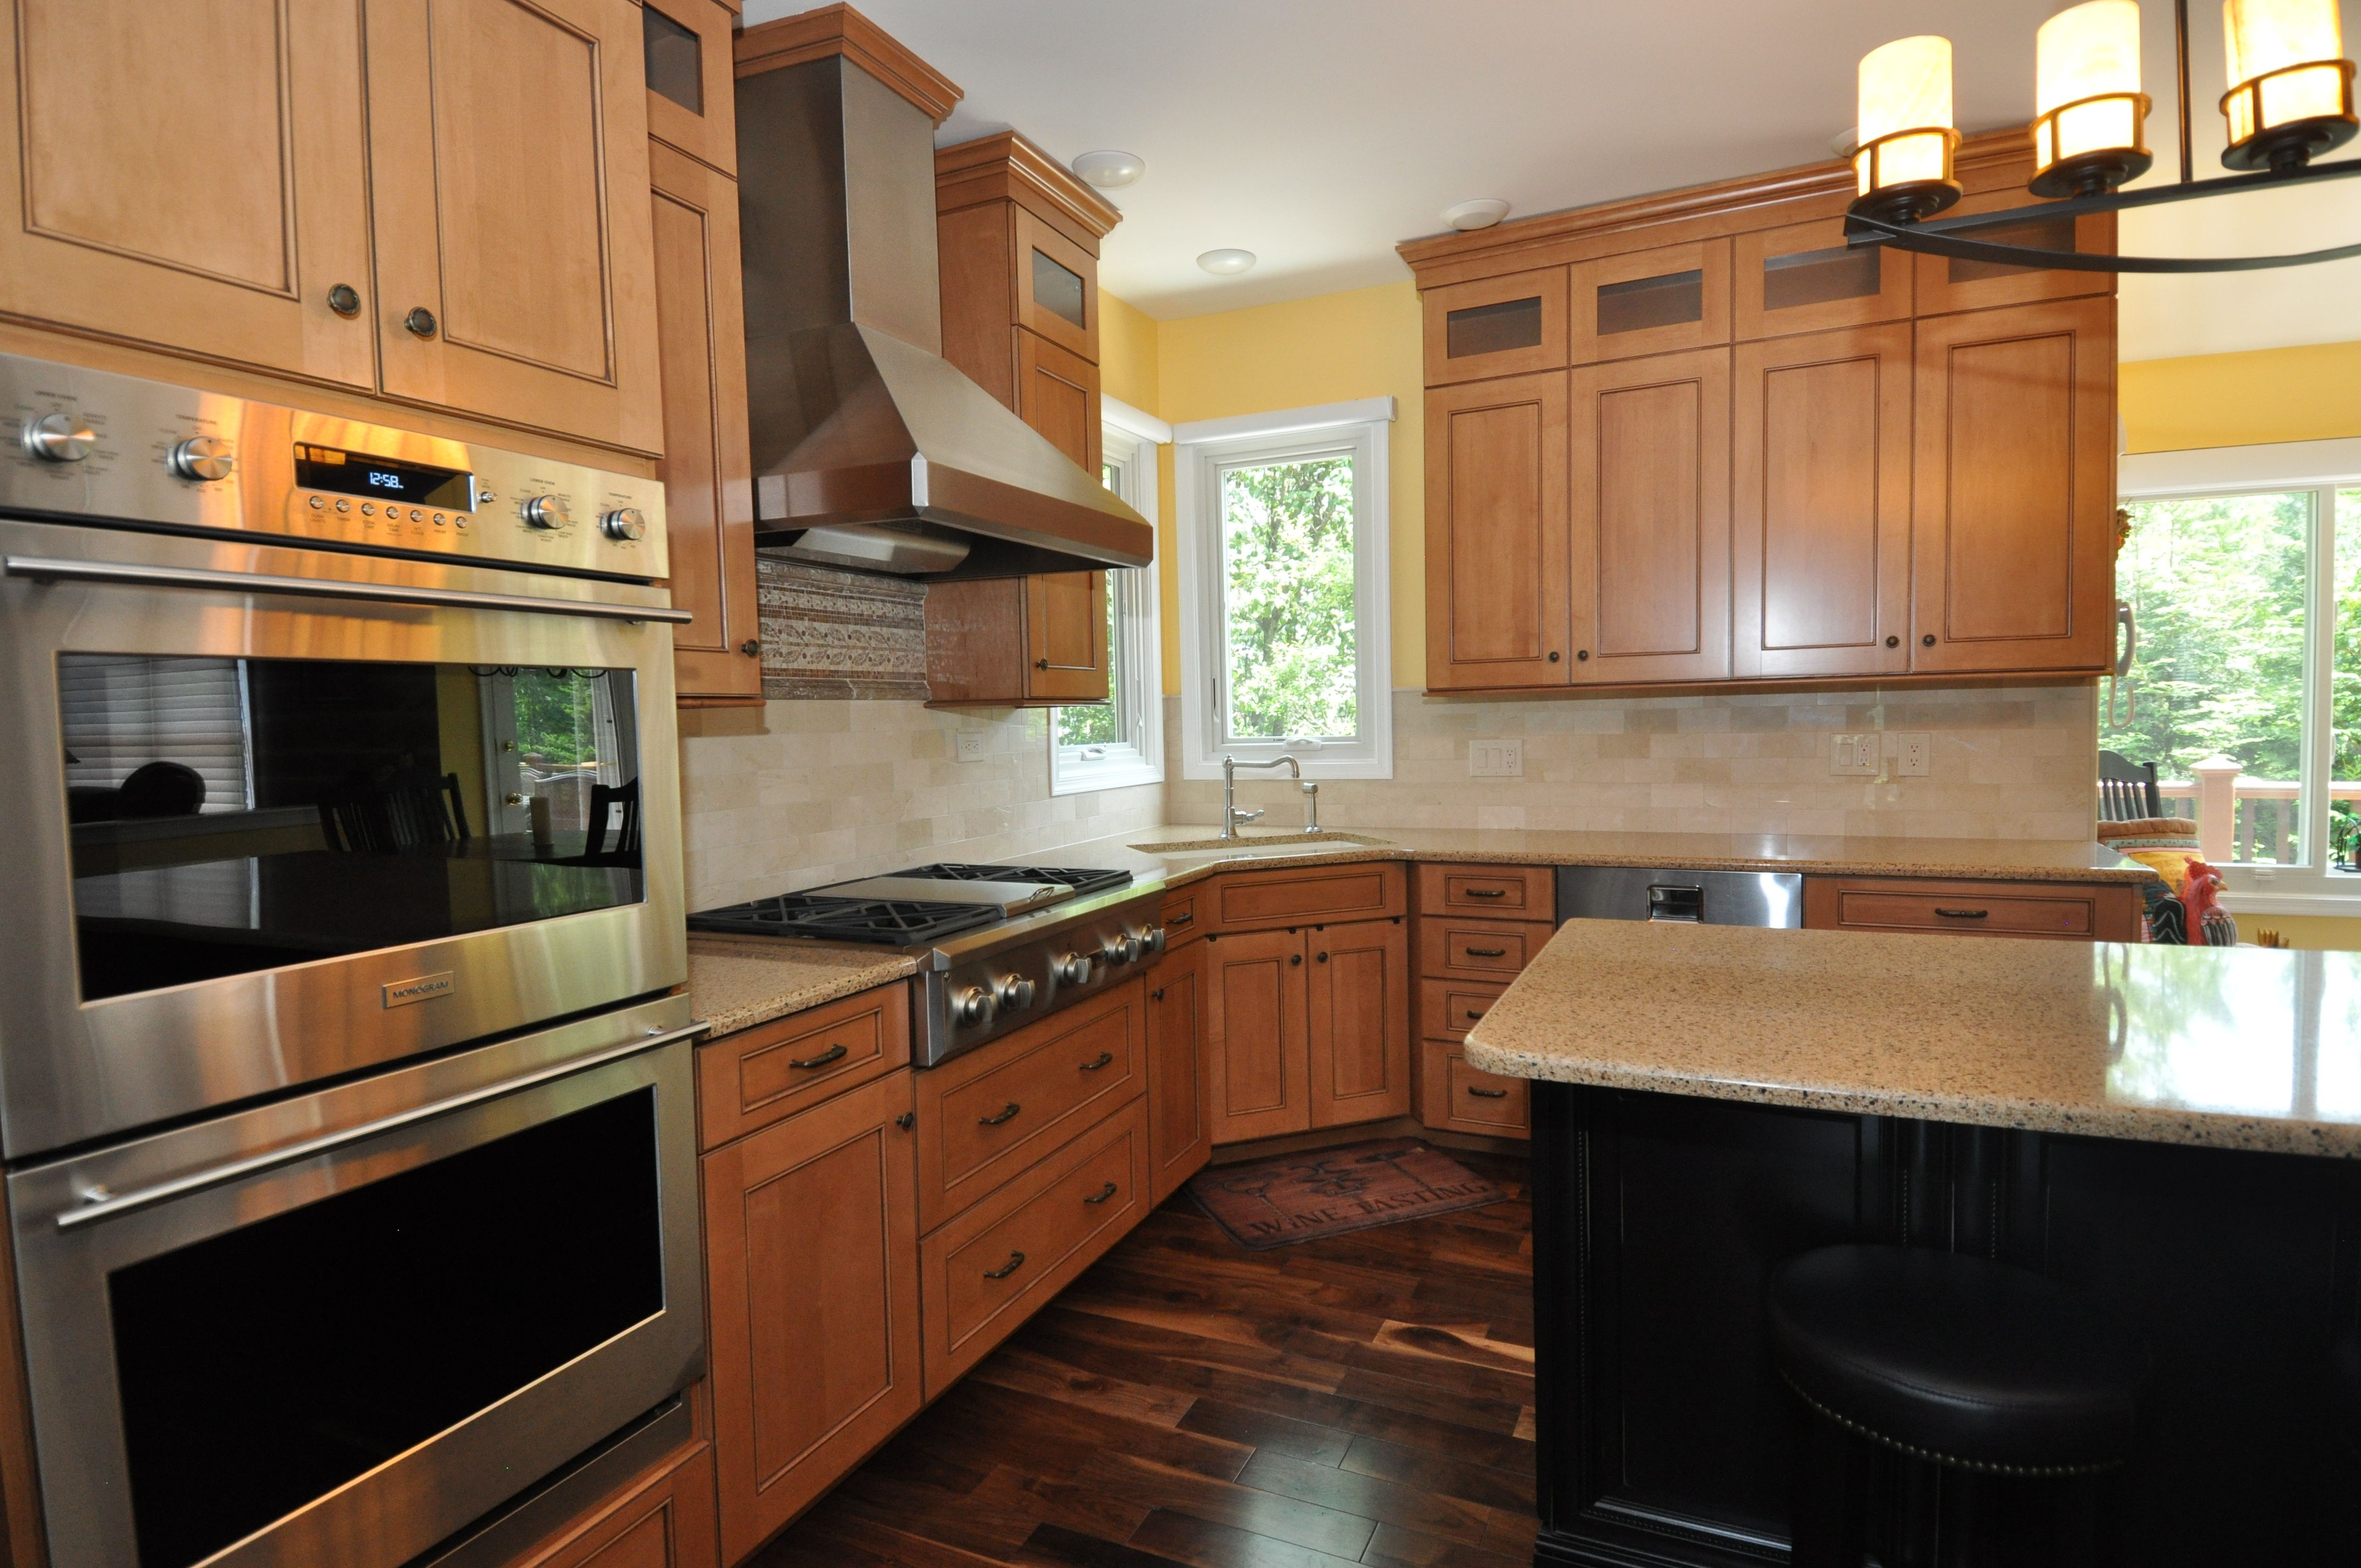 The New Cabinets Are Bridgewood Frameless Maple Cabinet In The Windom Door Kitchen Design Kitchen Remodel Design Maple Kitchen Cabinets